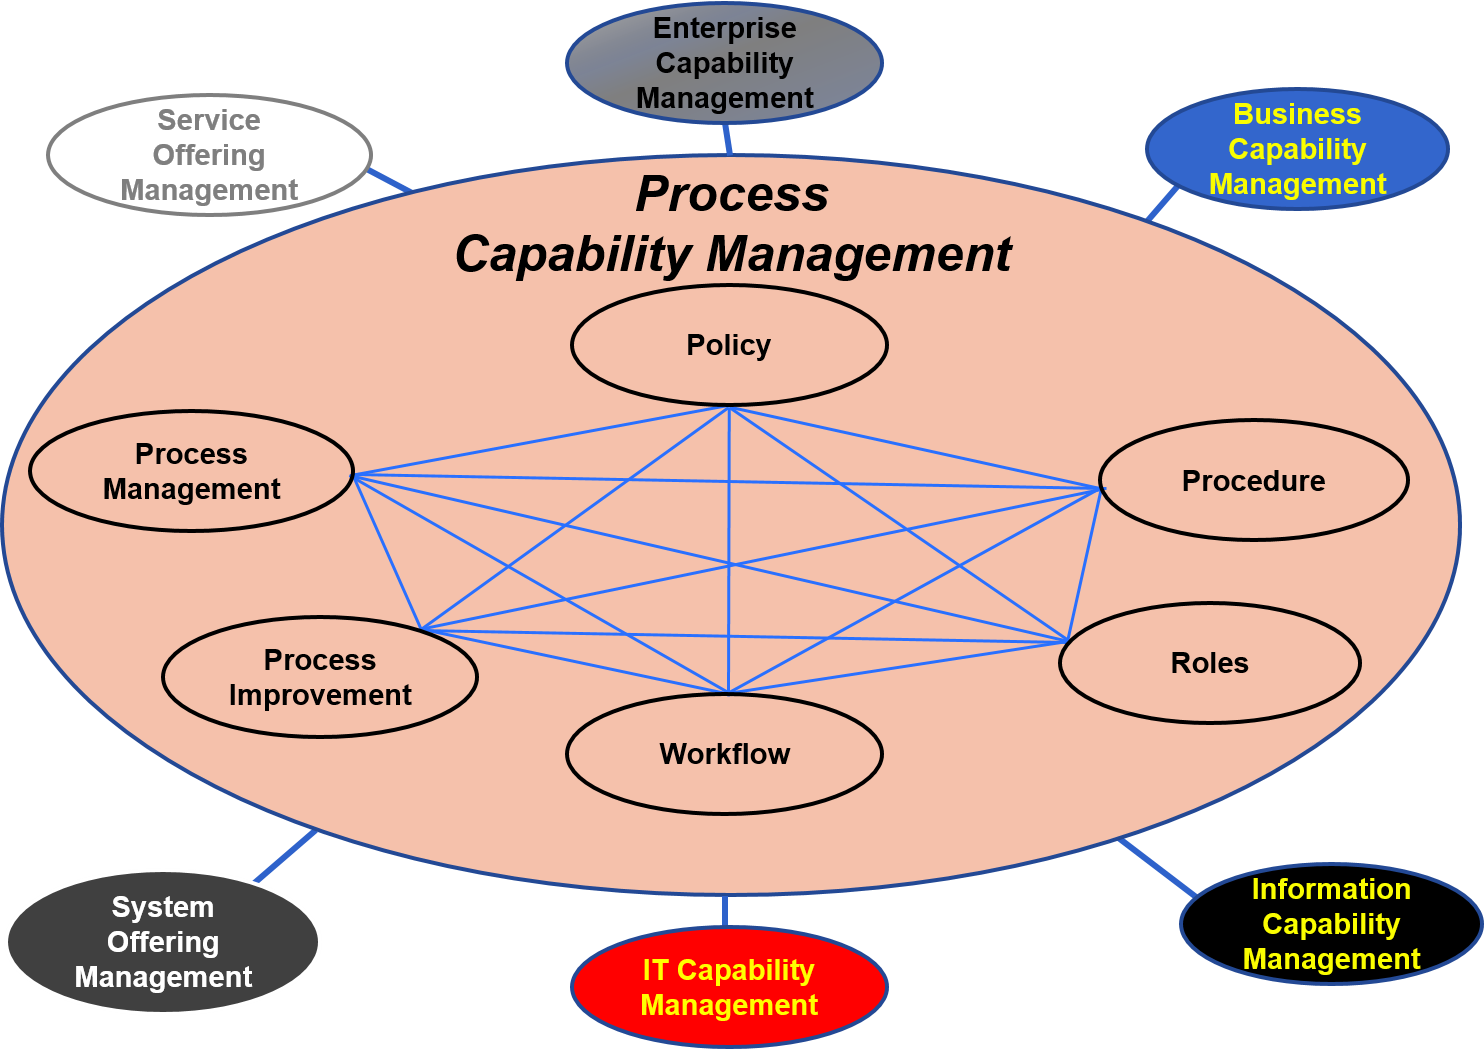 Process Capability Management